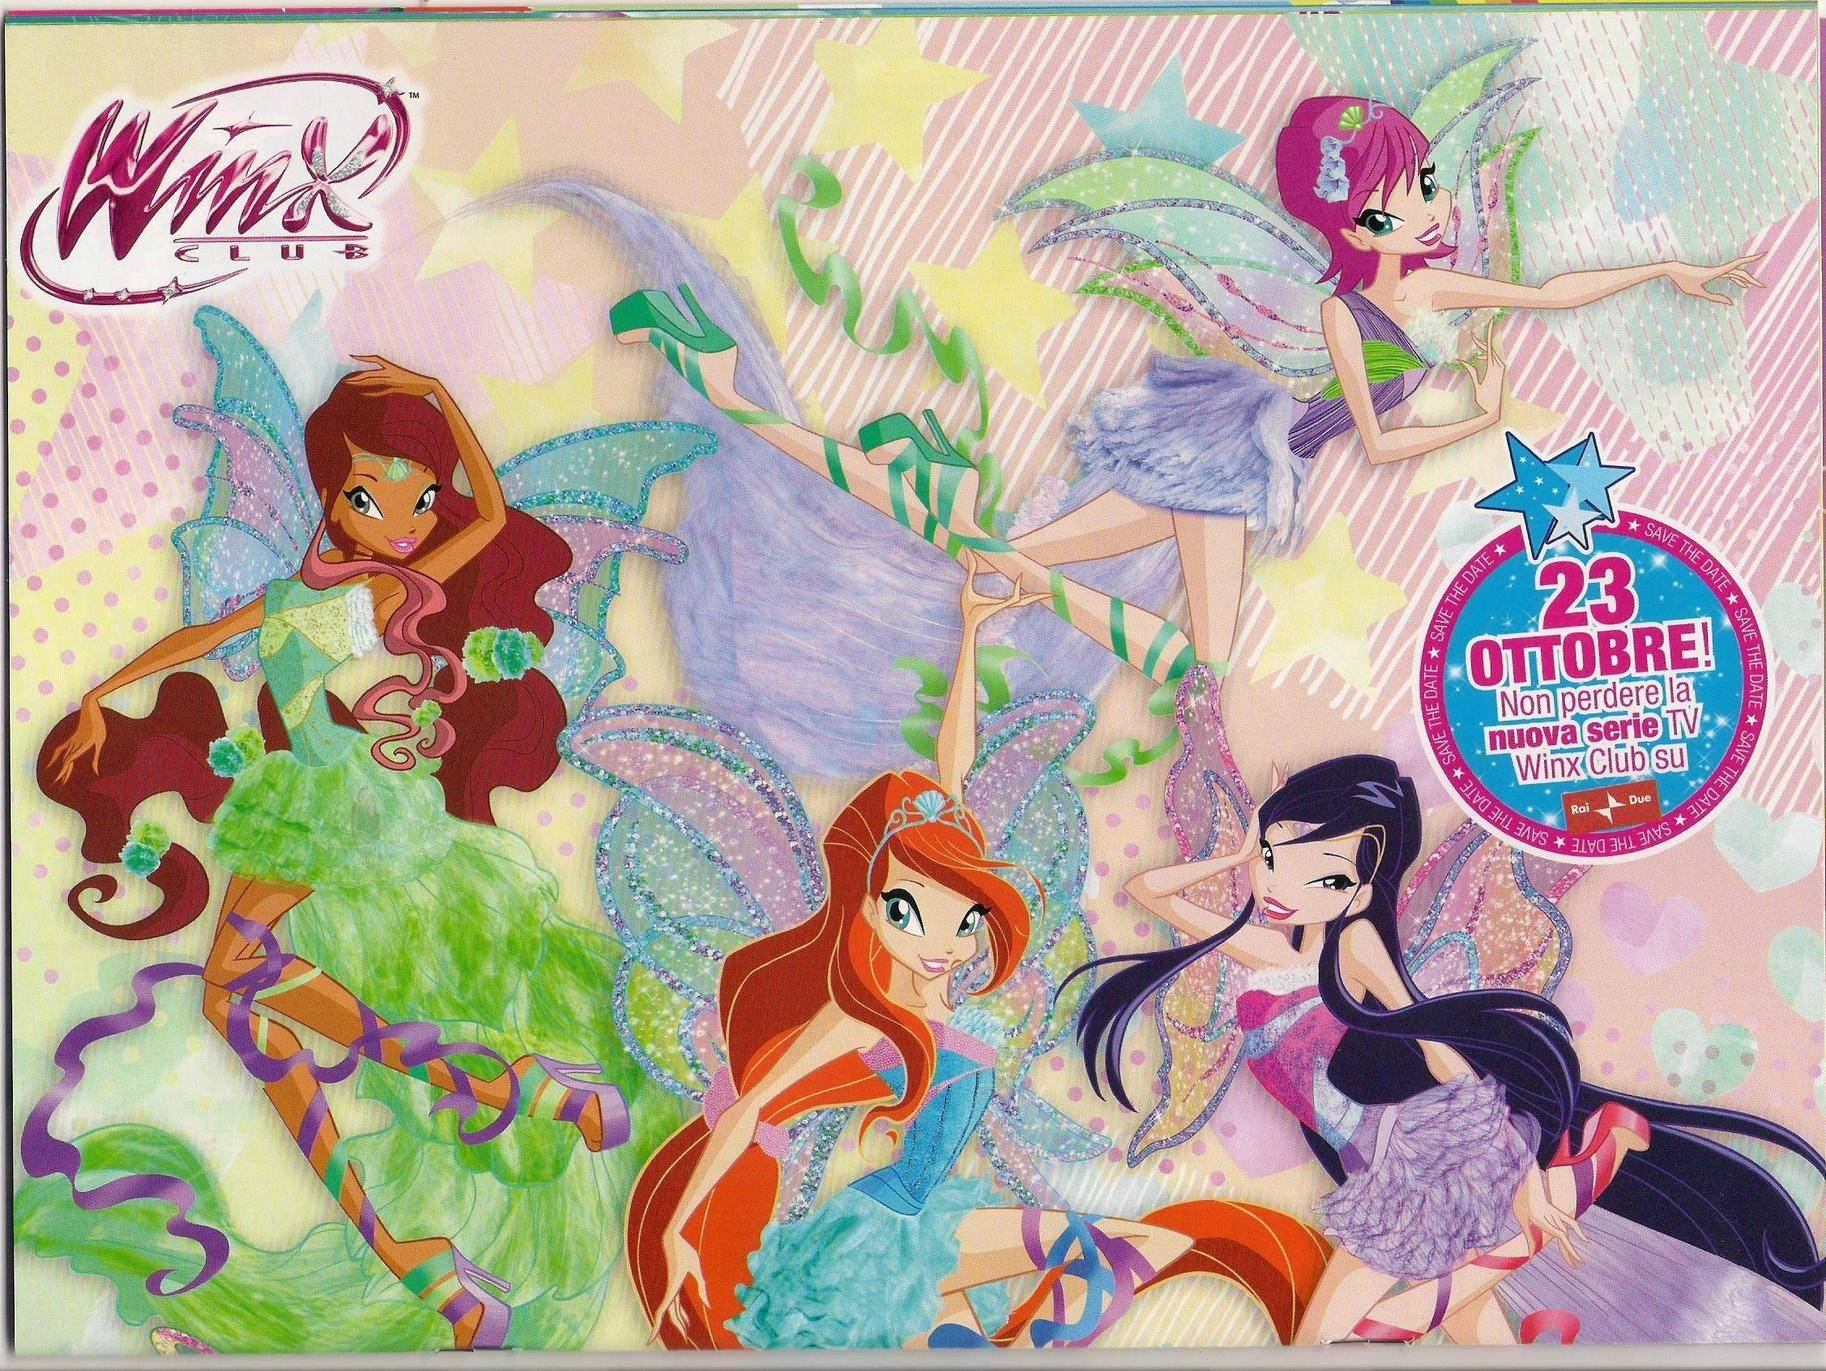 http://winxplanet.ru/uploads/photos/2014/03/531a1fb94b813.jpg